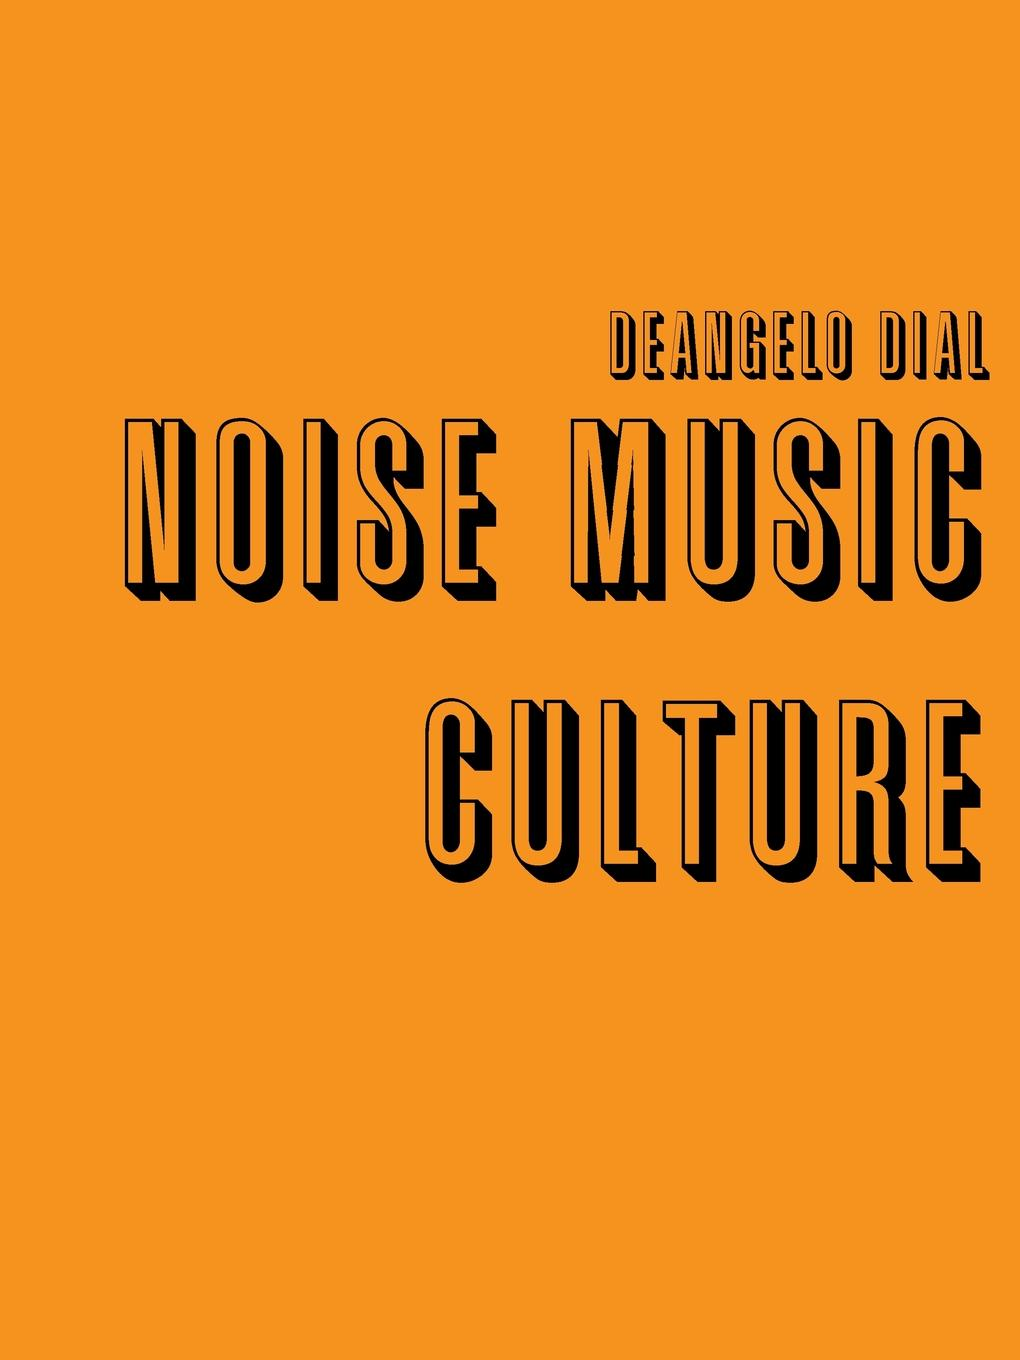 Noise Music Culture Noise Music Culture celebrates over 100 years of noise music...